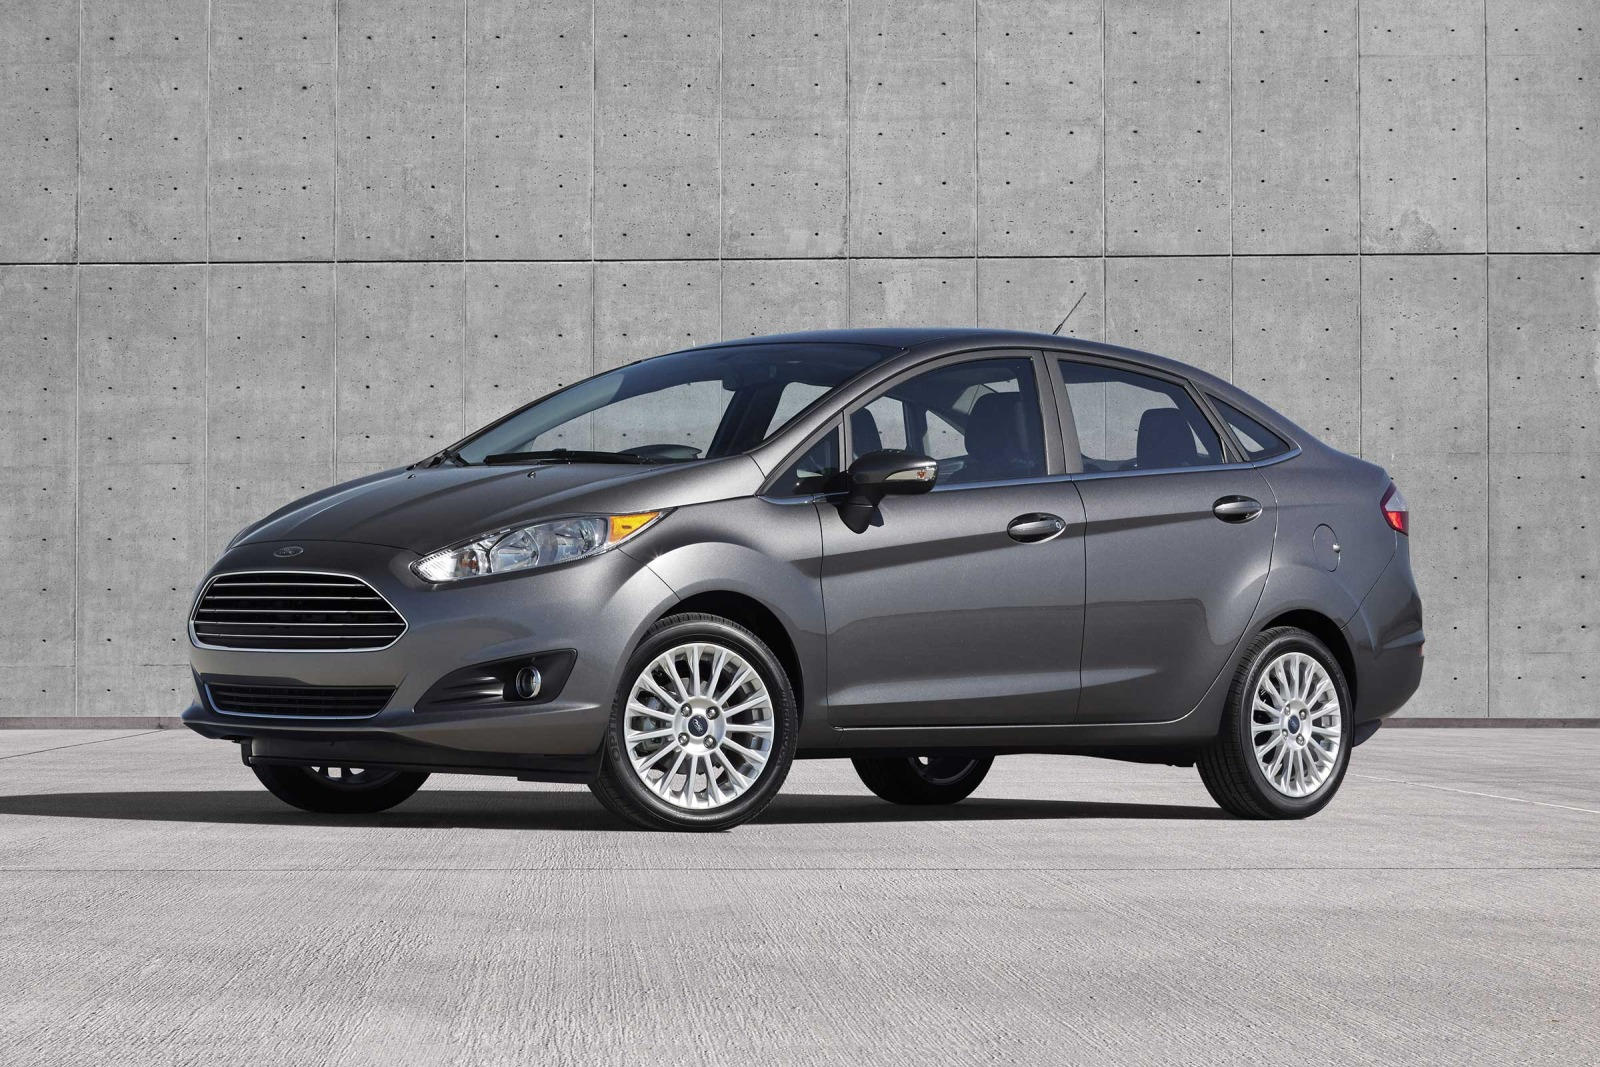 2017 ford fiesta sedan review trims specs and price. Black Bedroom Furniture Sets. Home Design Ideas